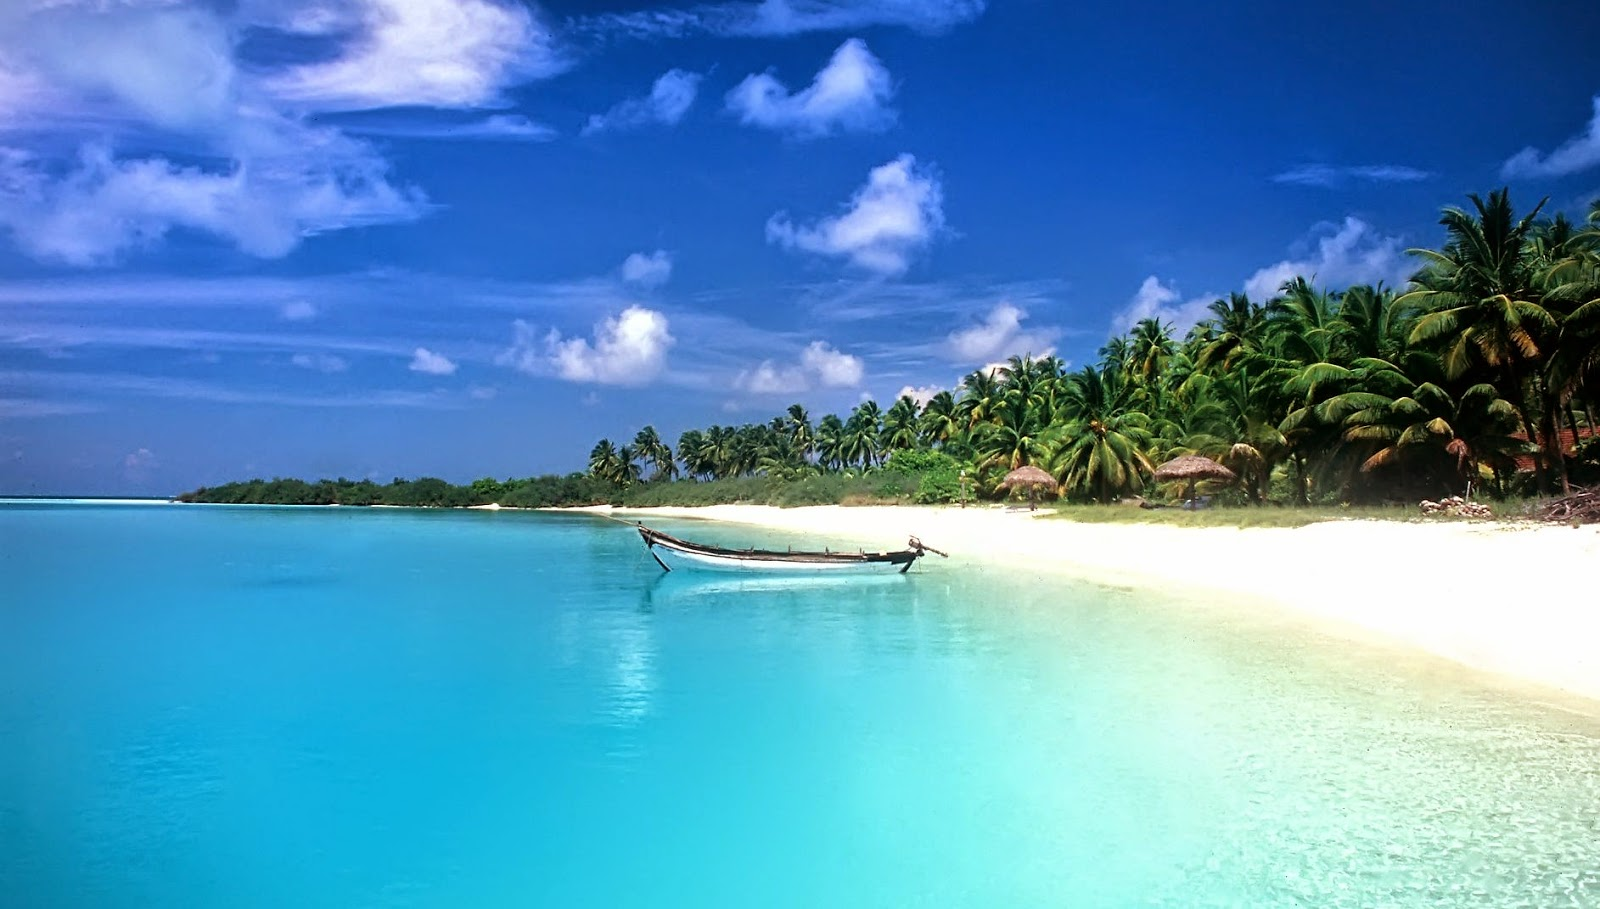 8771285-beautiful-beach-pictures